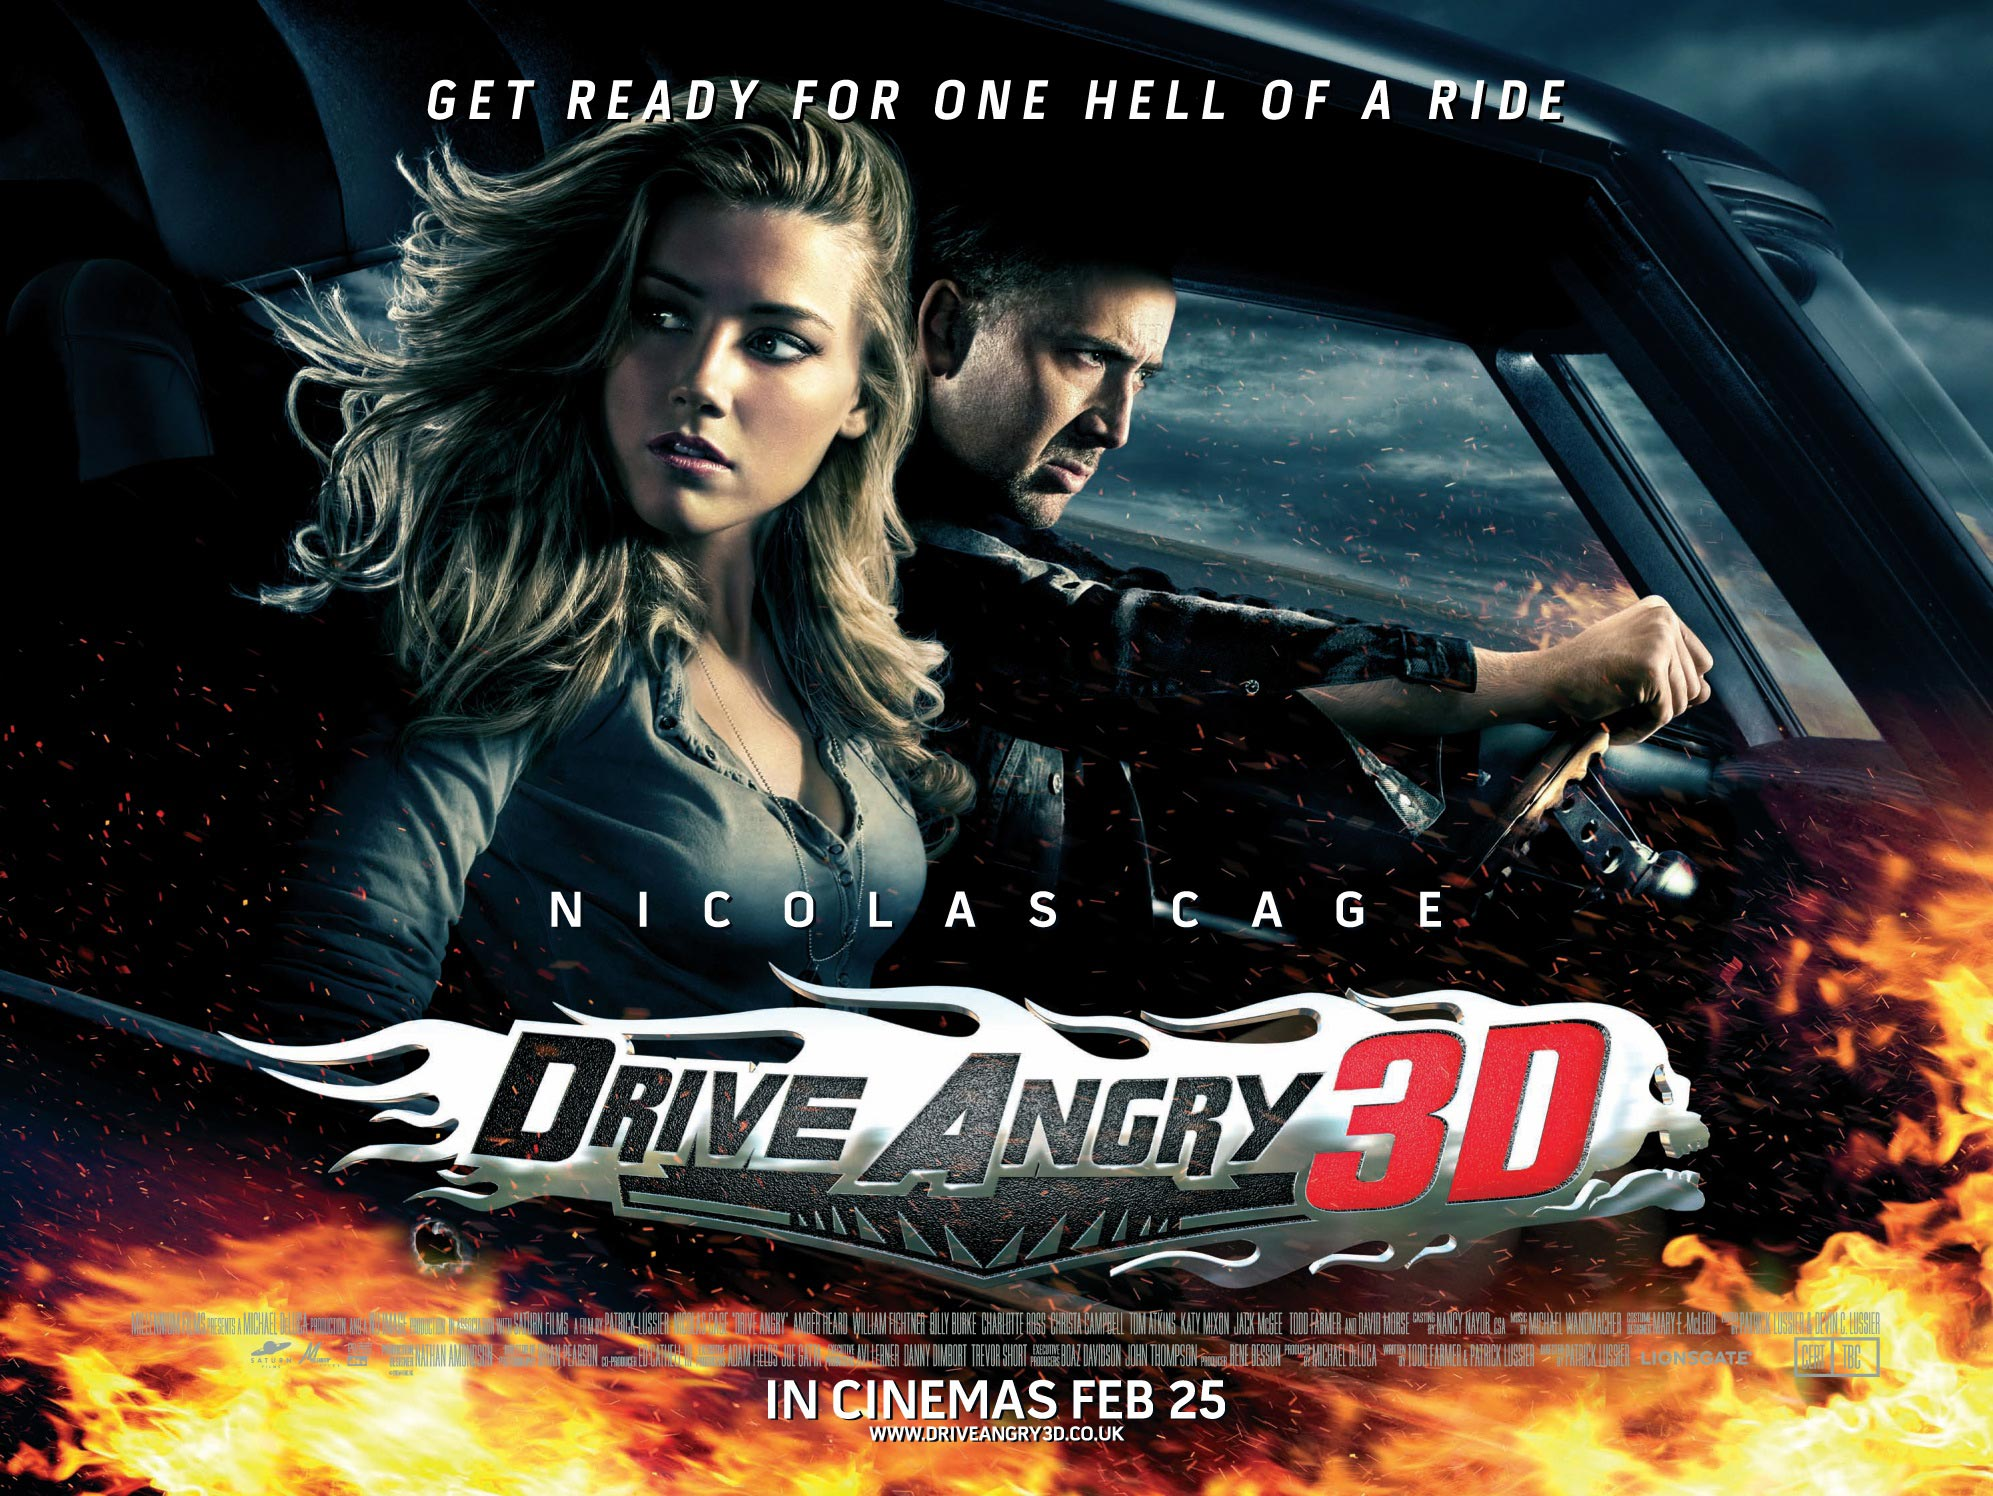 driveangry_poster